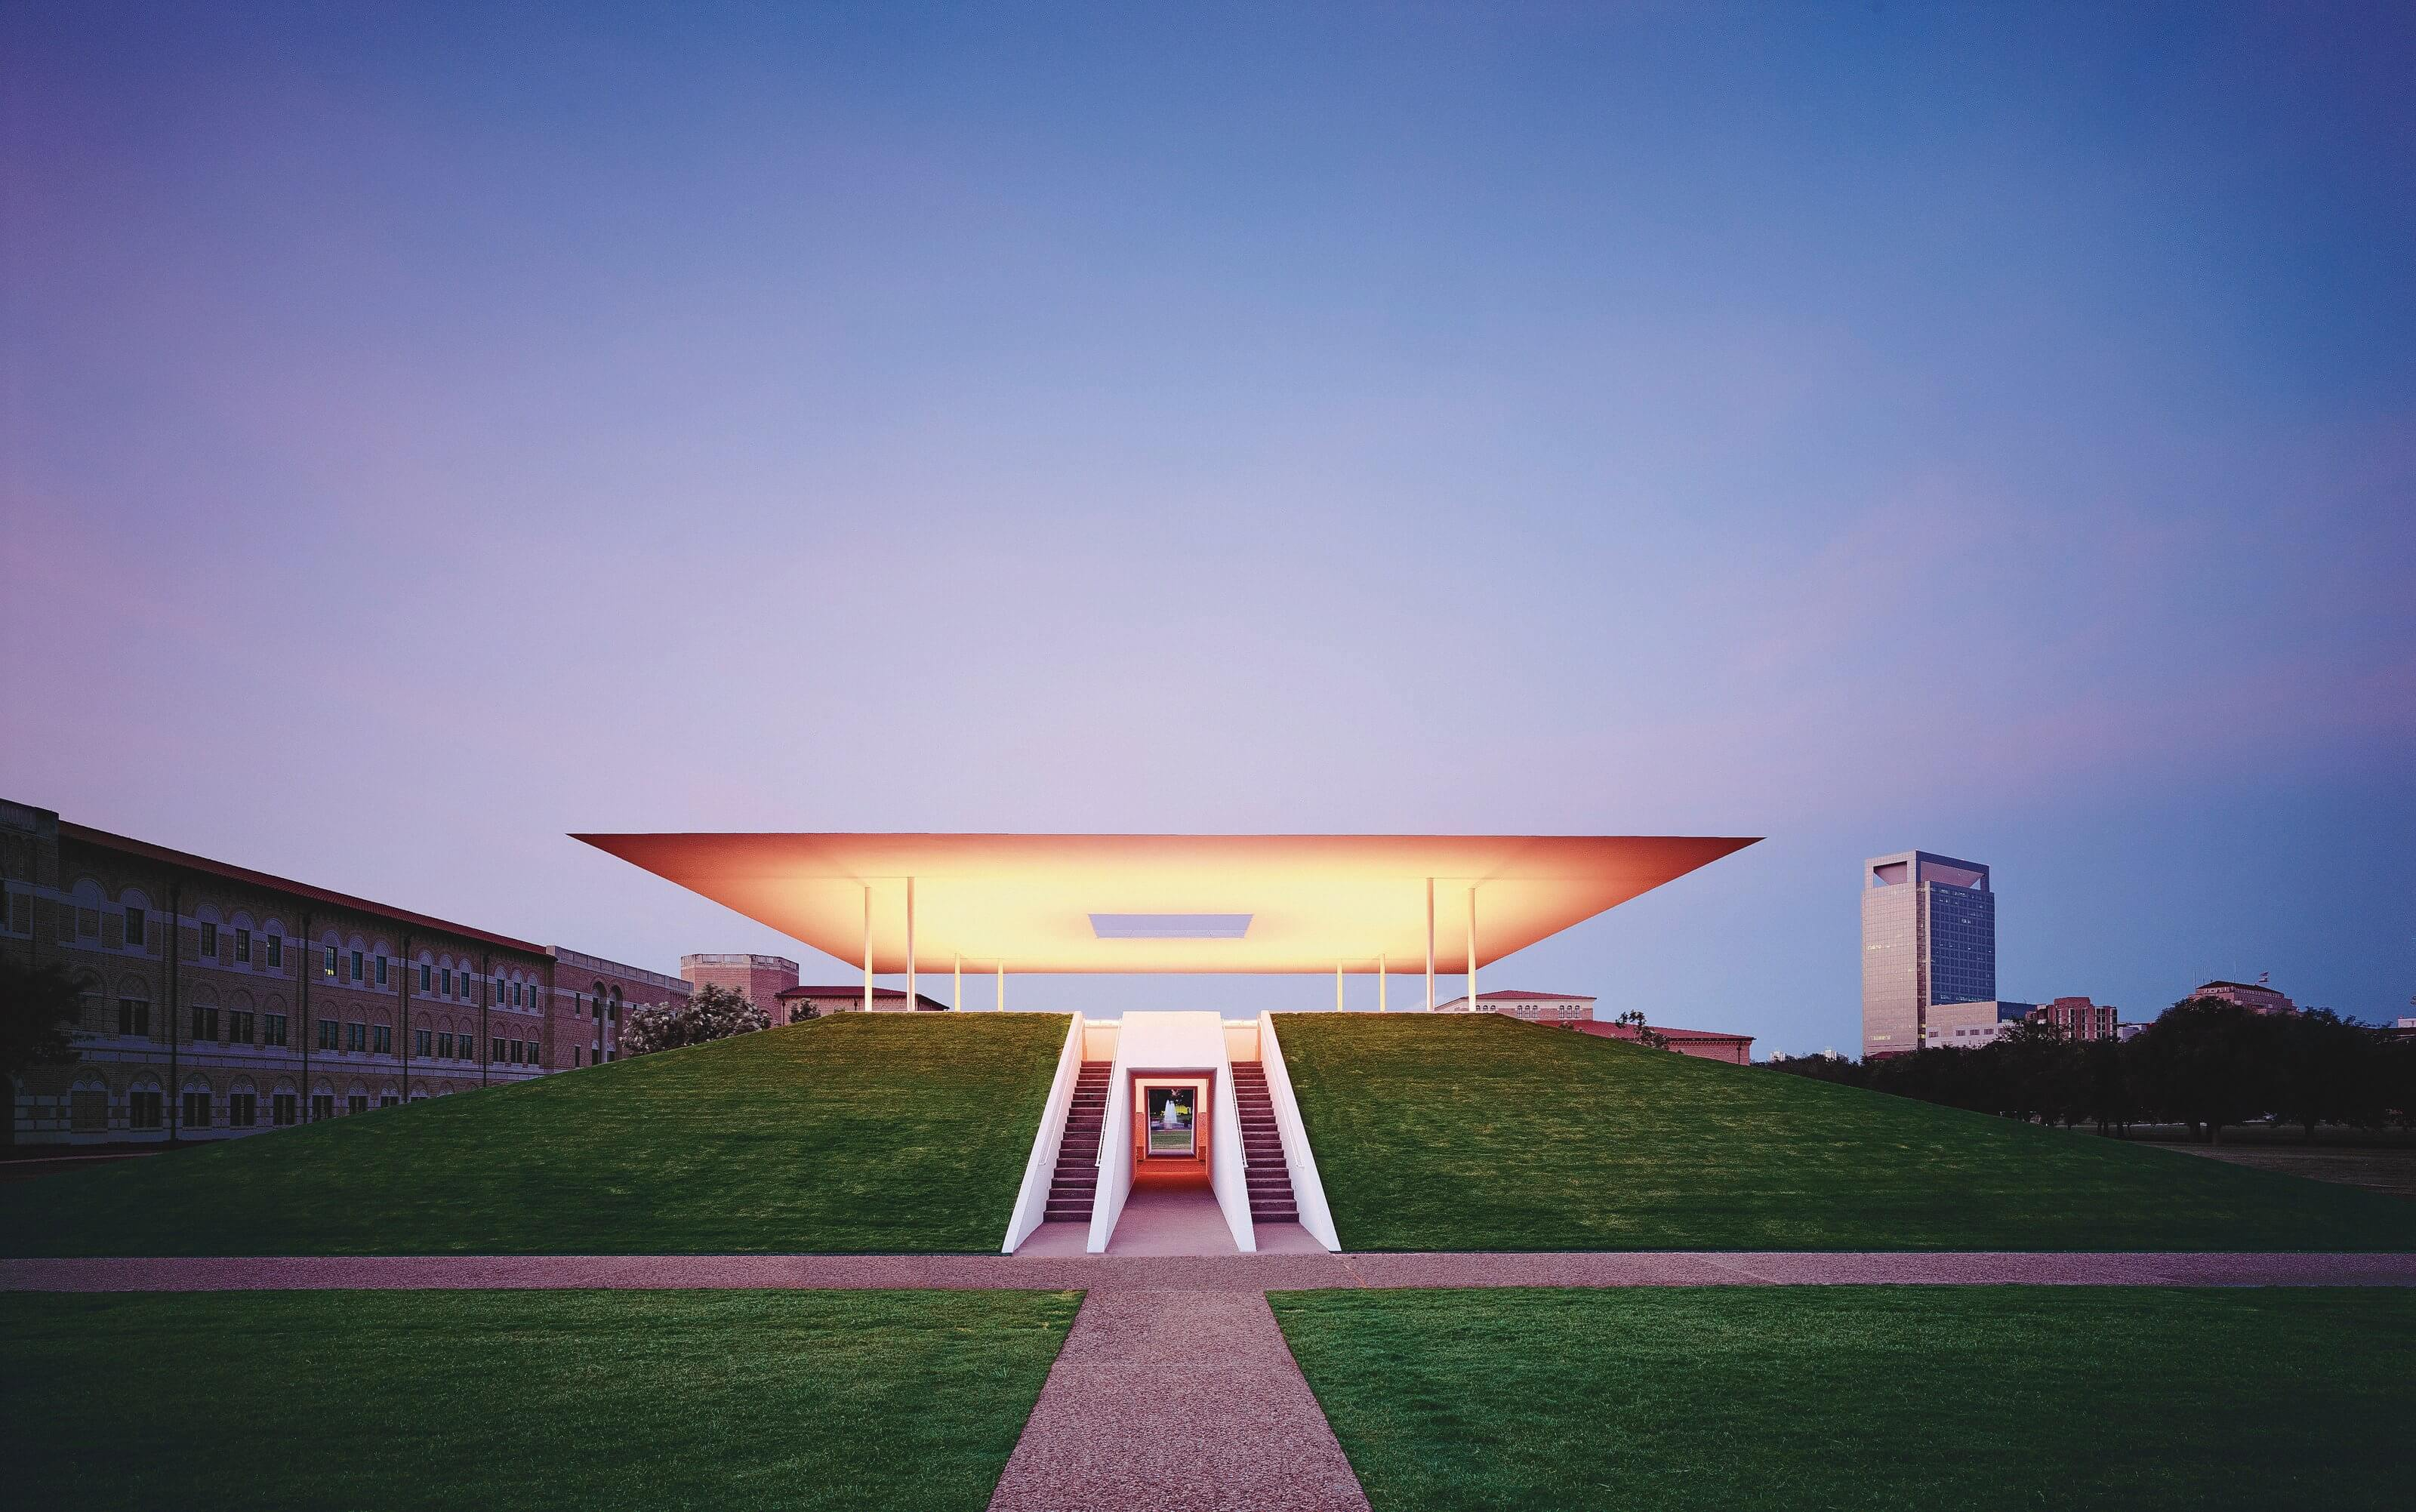 At sunrise and sunset, the Twilight Epiphany Skyspace changes colors as part of an elaborate light sequence designed by artist James Turrell. (Credit: Rice University)